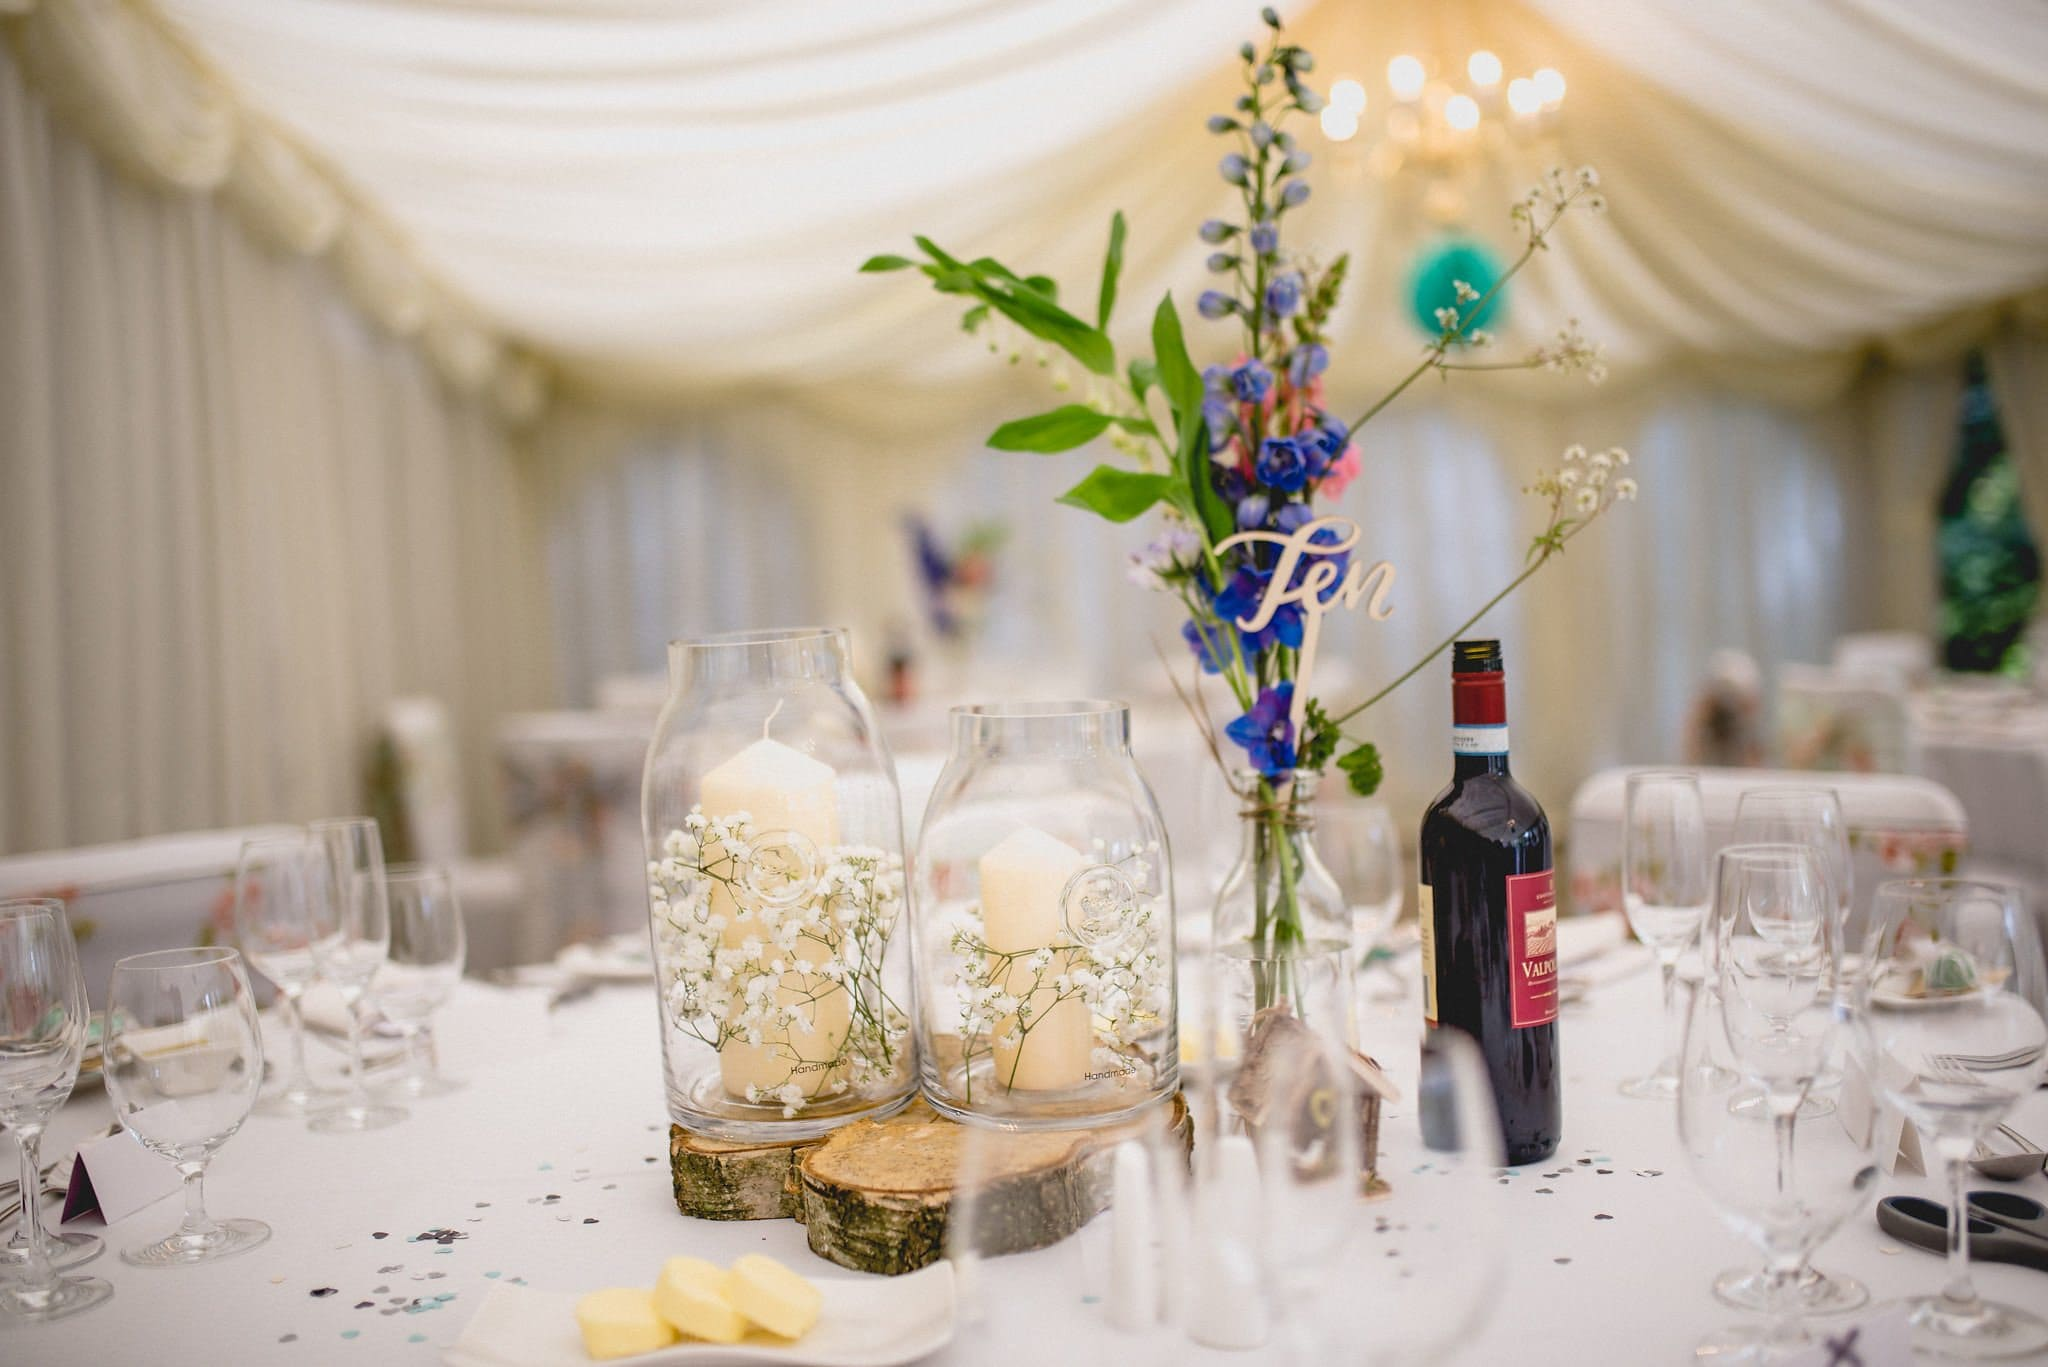 A close up of one of the table centres, with pillar candles and gypsophila, a laser cut table number and wildflowers in a bud vase